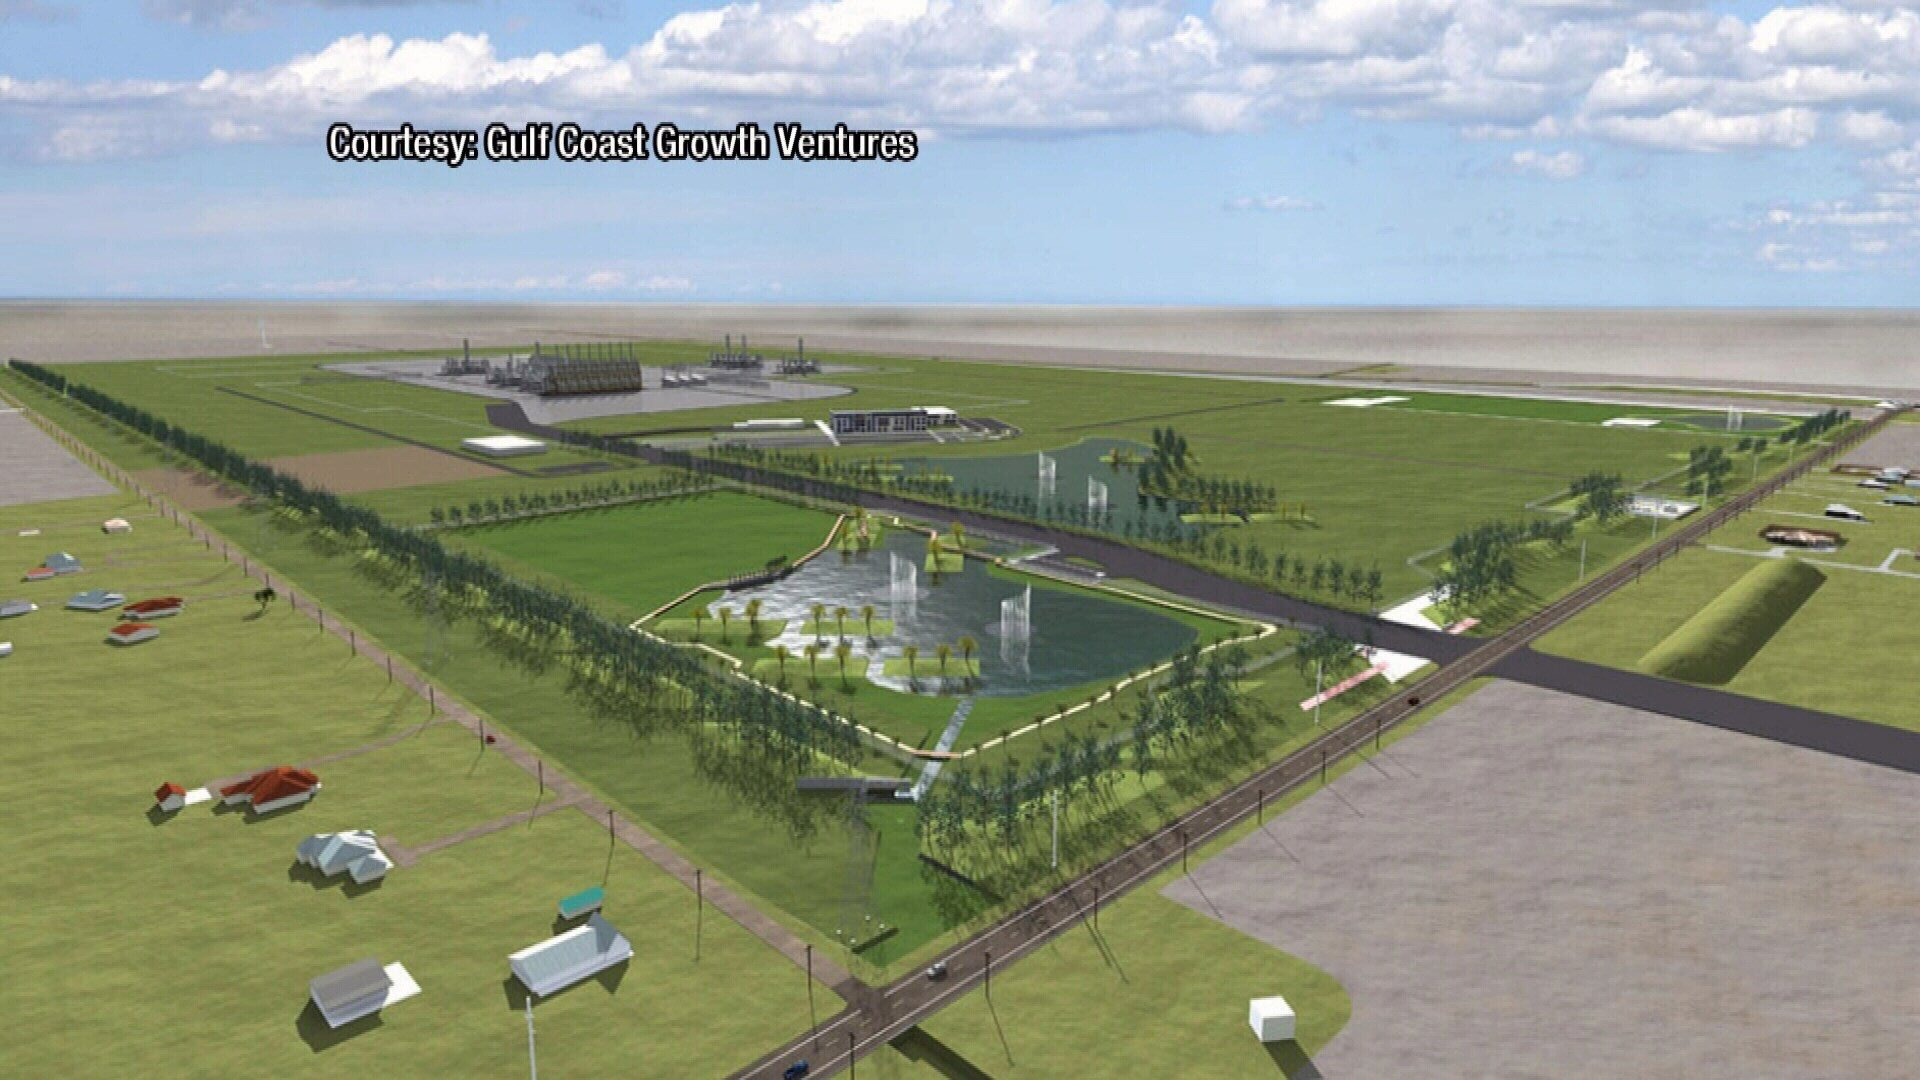 The plant is expected to create 11,000 construction jobs and 600 permanent jobs.